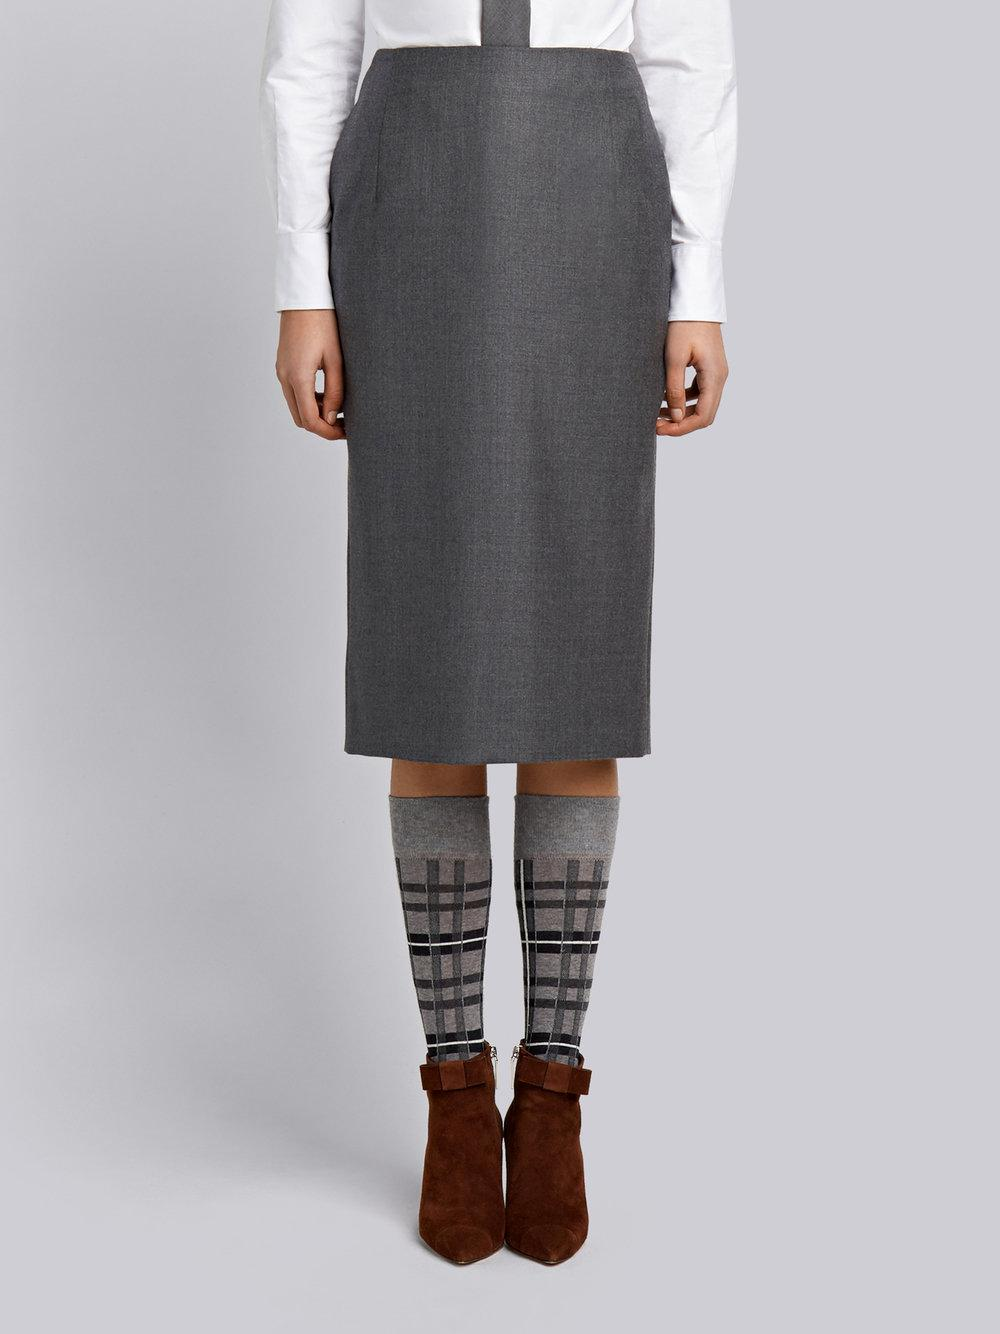 Thom Browne Striped Wool Twill Straight Skirt Discount Outlet Locations Outlet With Paypal Order Discount Popular Outlet Wholesale Price Clearance Pictures qKuxE51E